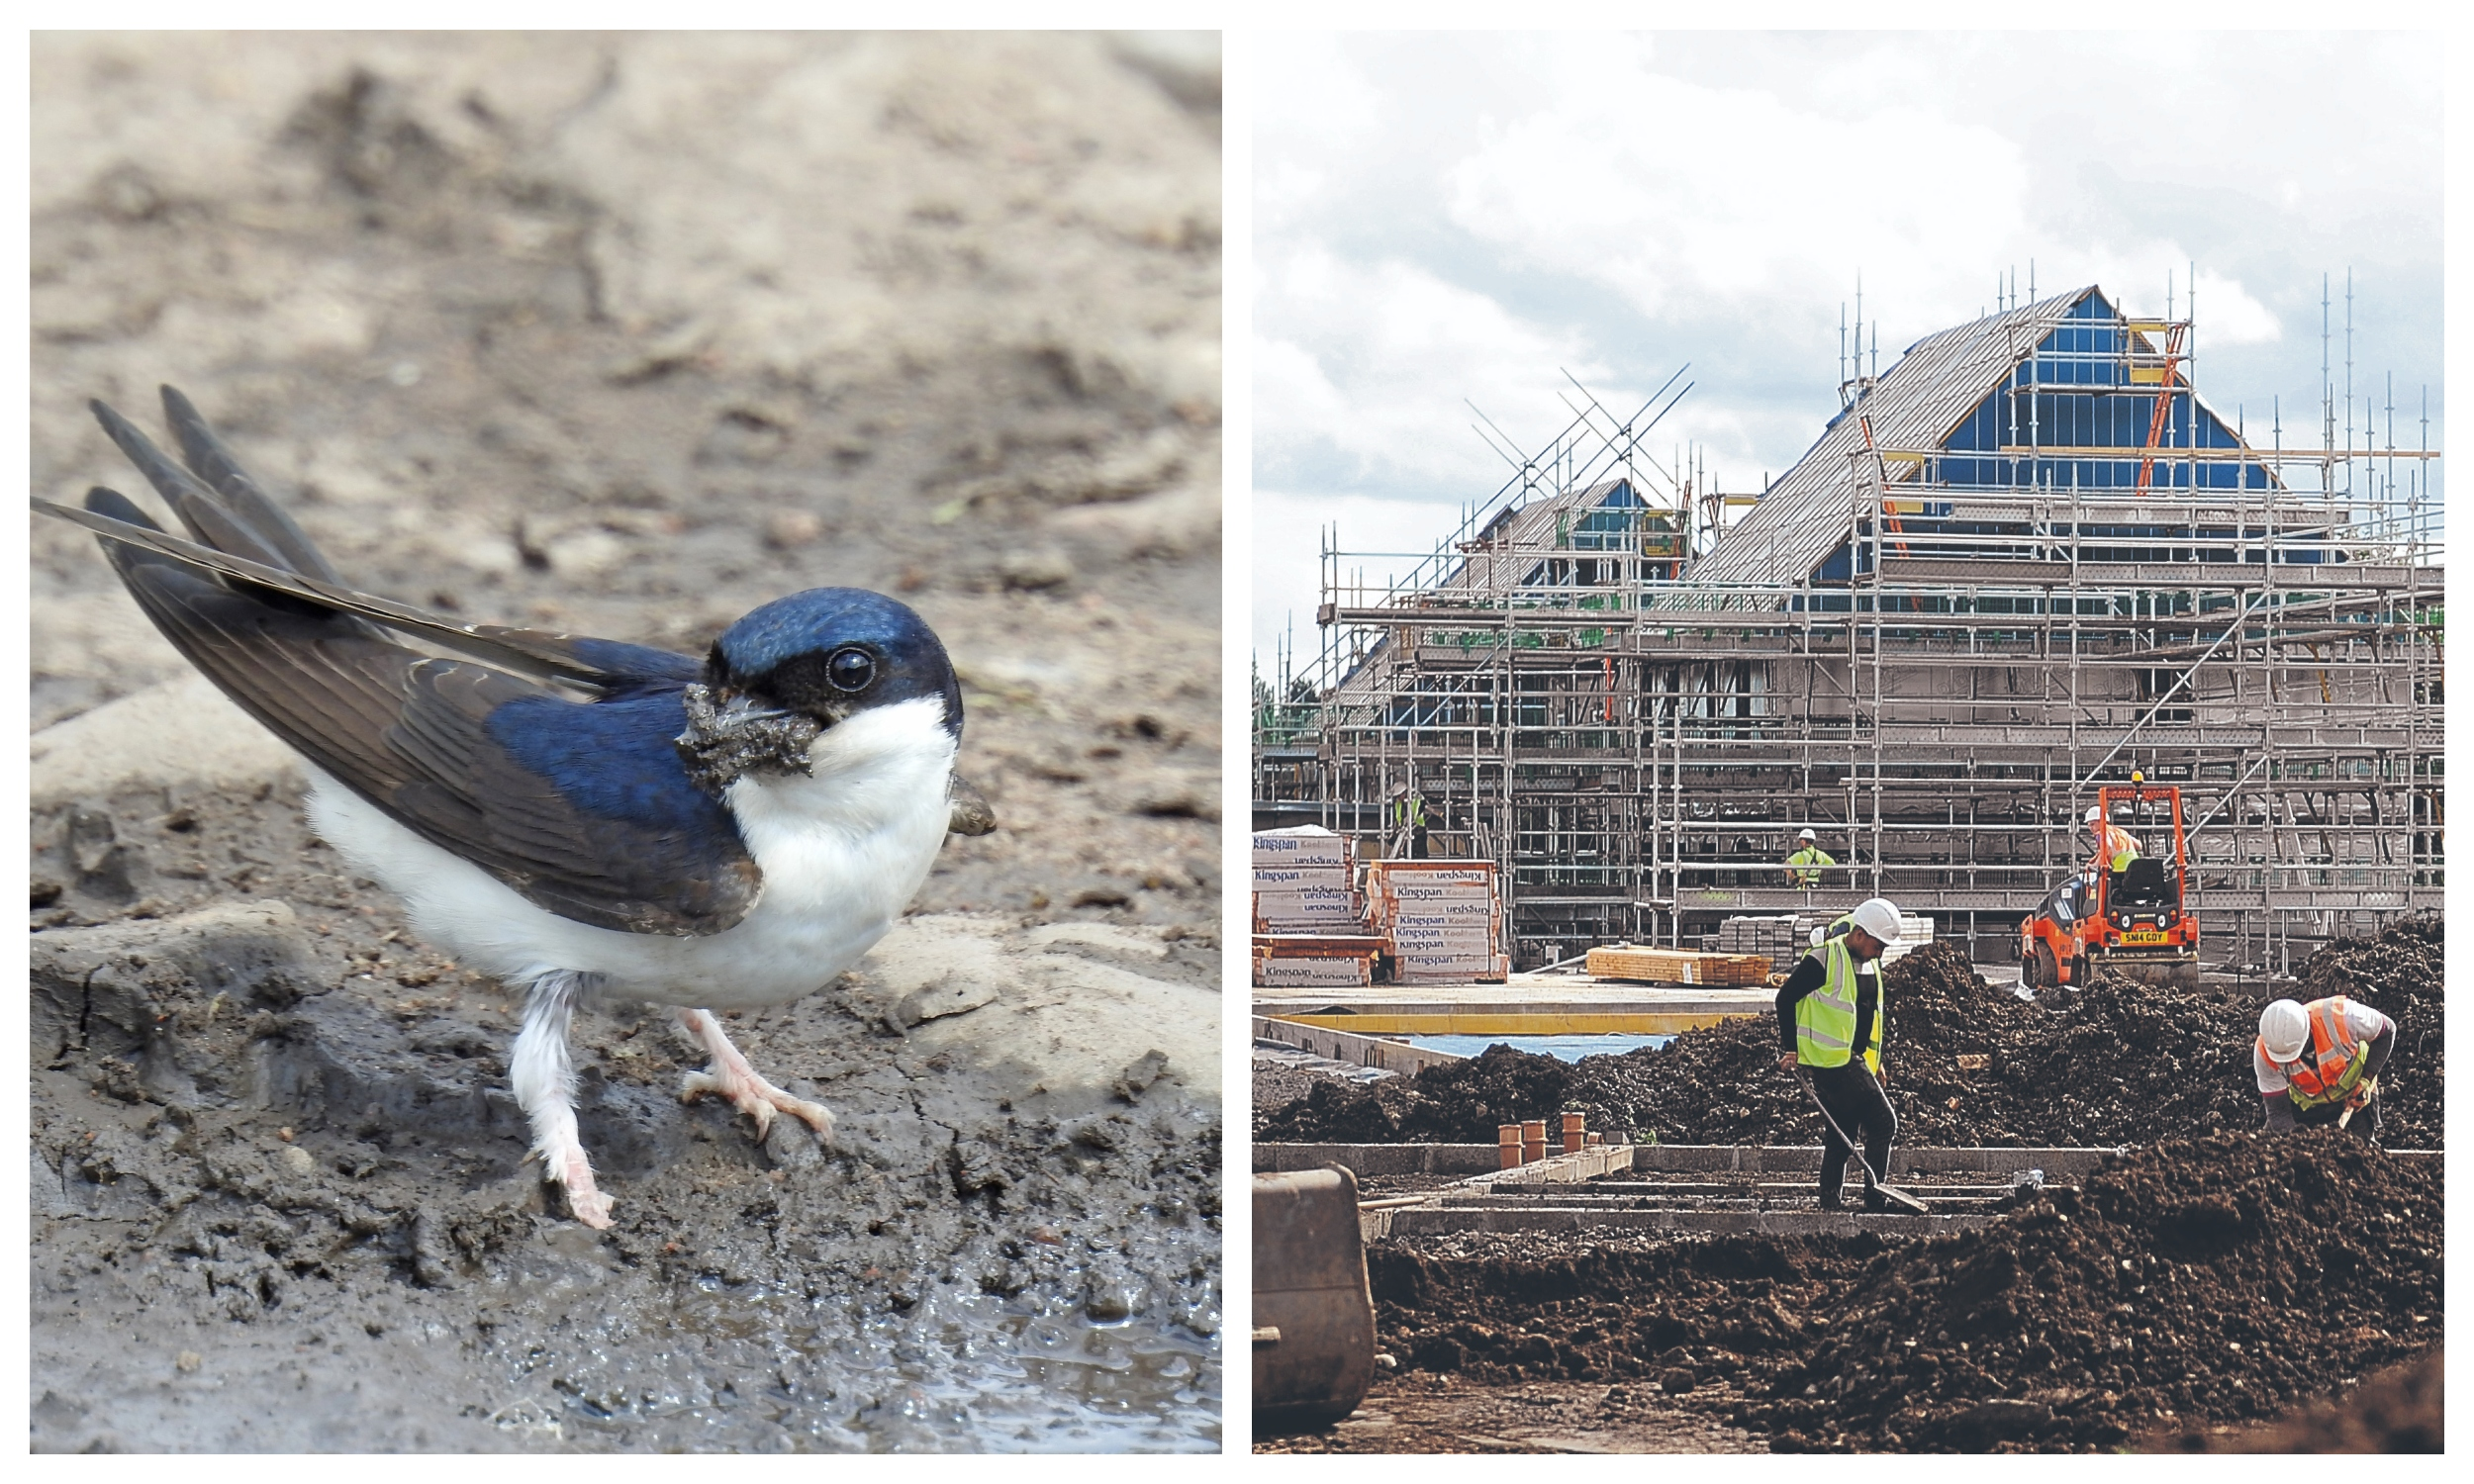 Left: A house martin gathering mud for nest building at Cromarty in the Black Isle (but not like the one on the right). Picture courtesy of reader Sandy Sutherland